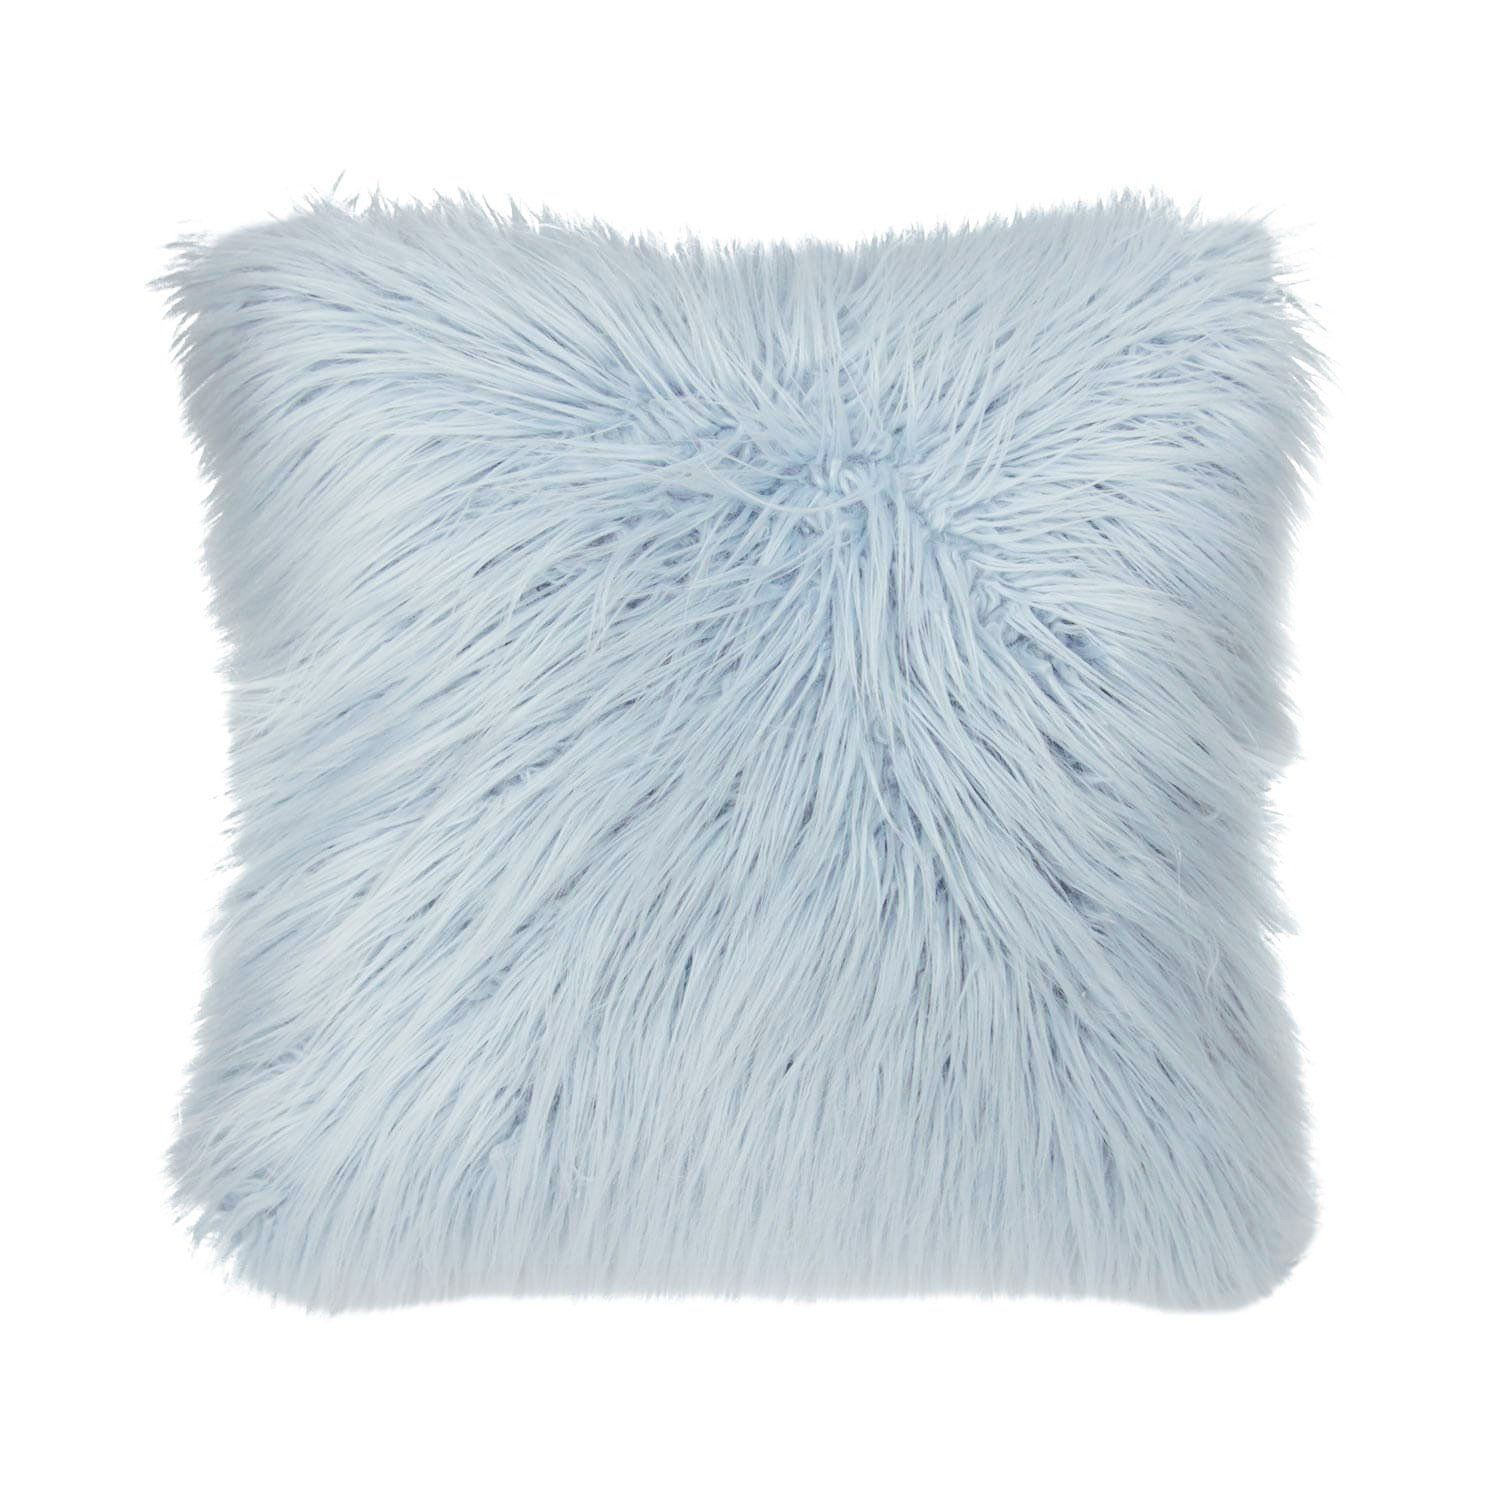 rugs pillow brown by zoom throws details pillows opulence exotic fur fox big koket finland